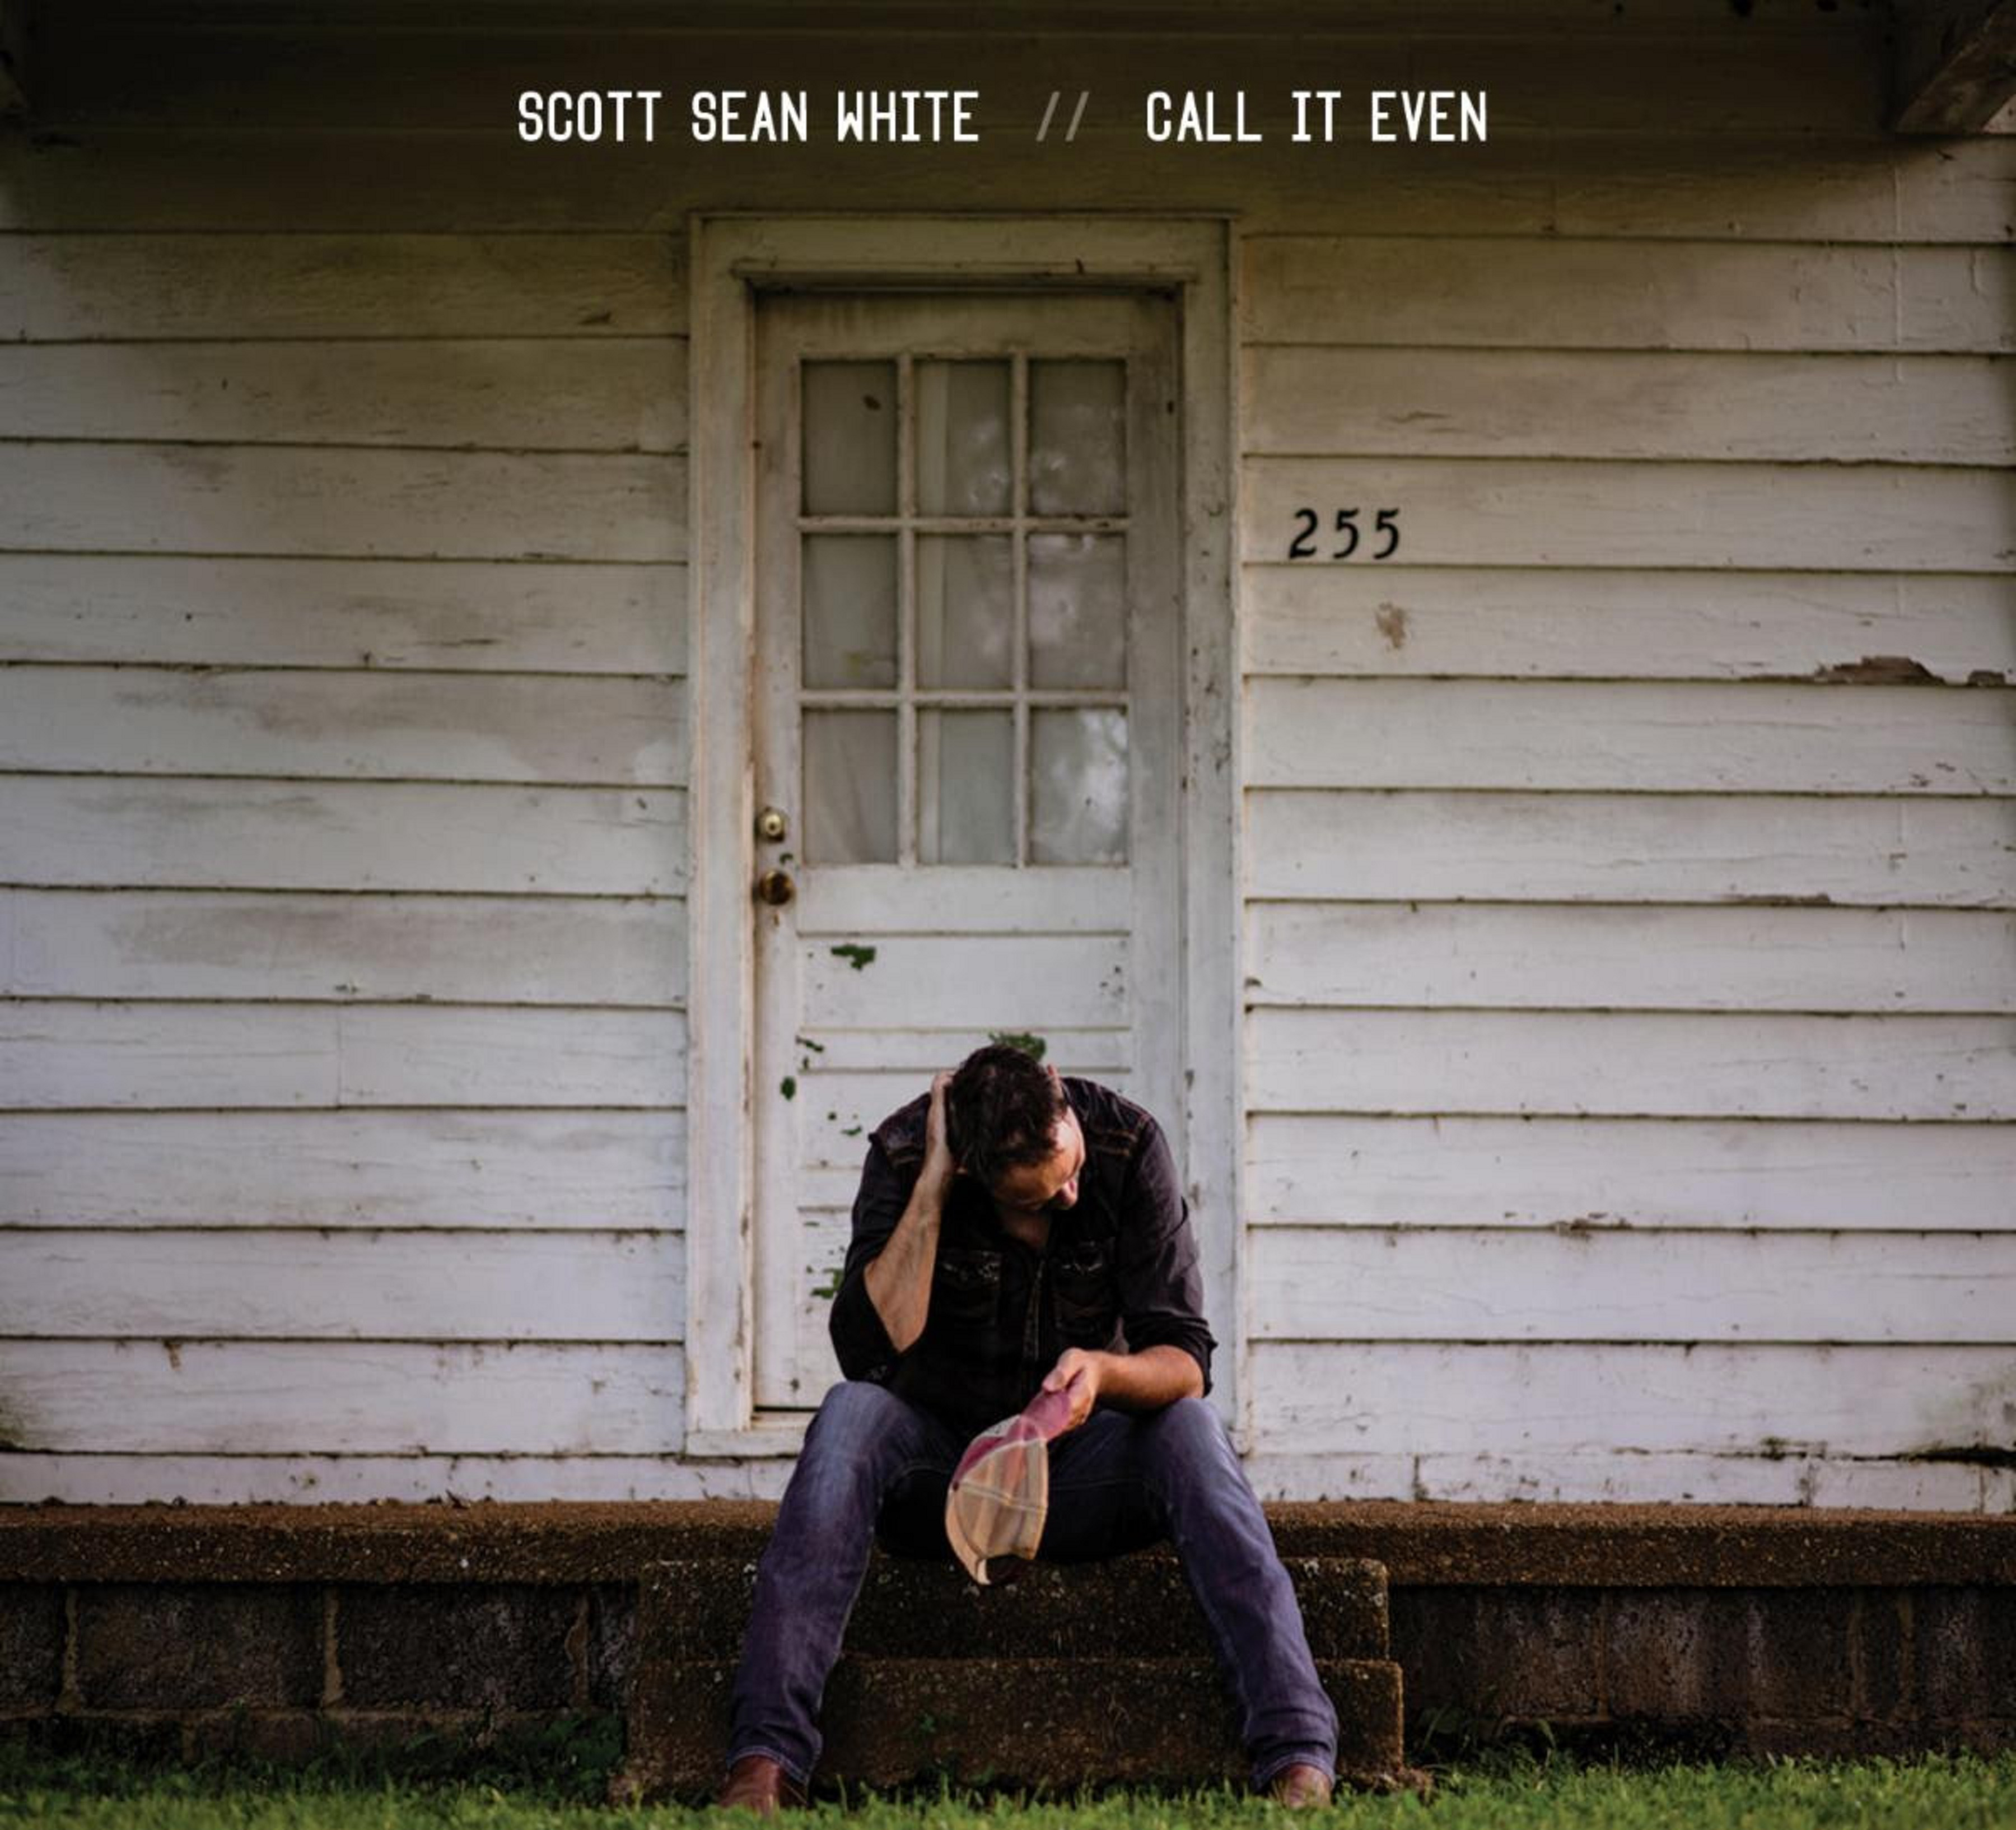 Scott Sean White Builds A Foundation On His Songcraft And His Truth With Debut Album Call It Even